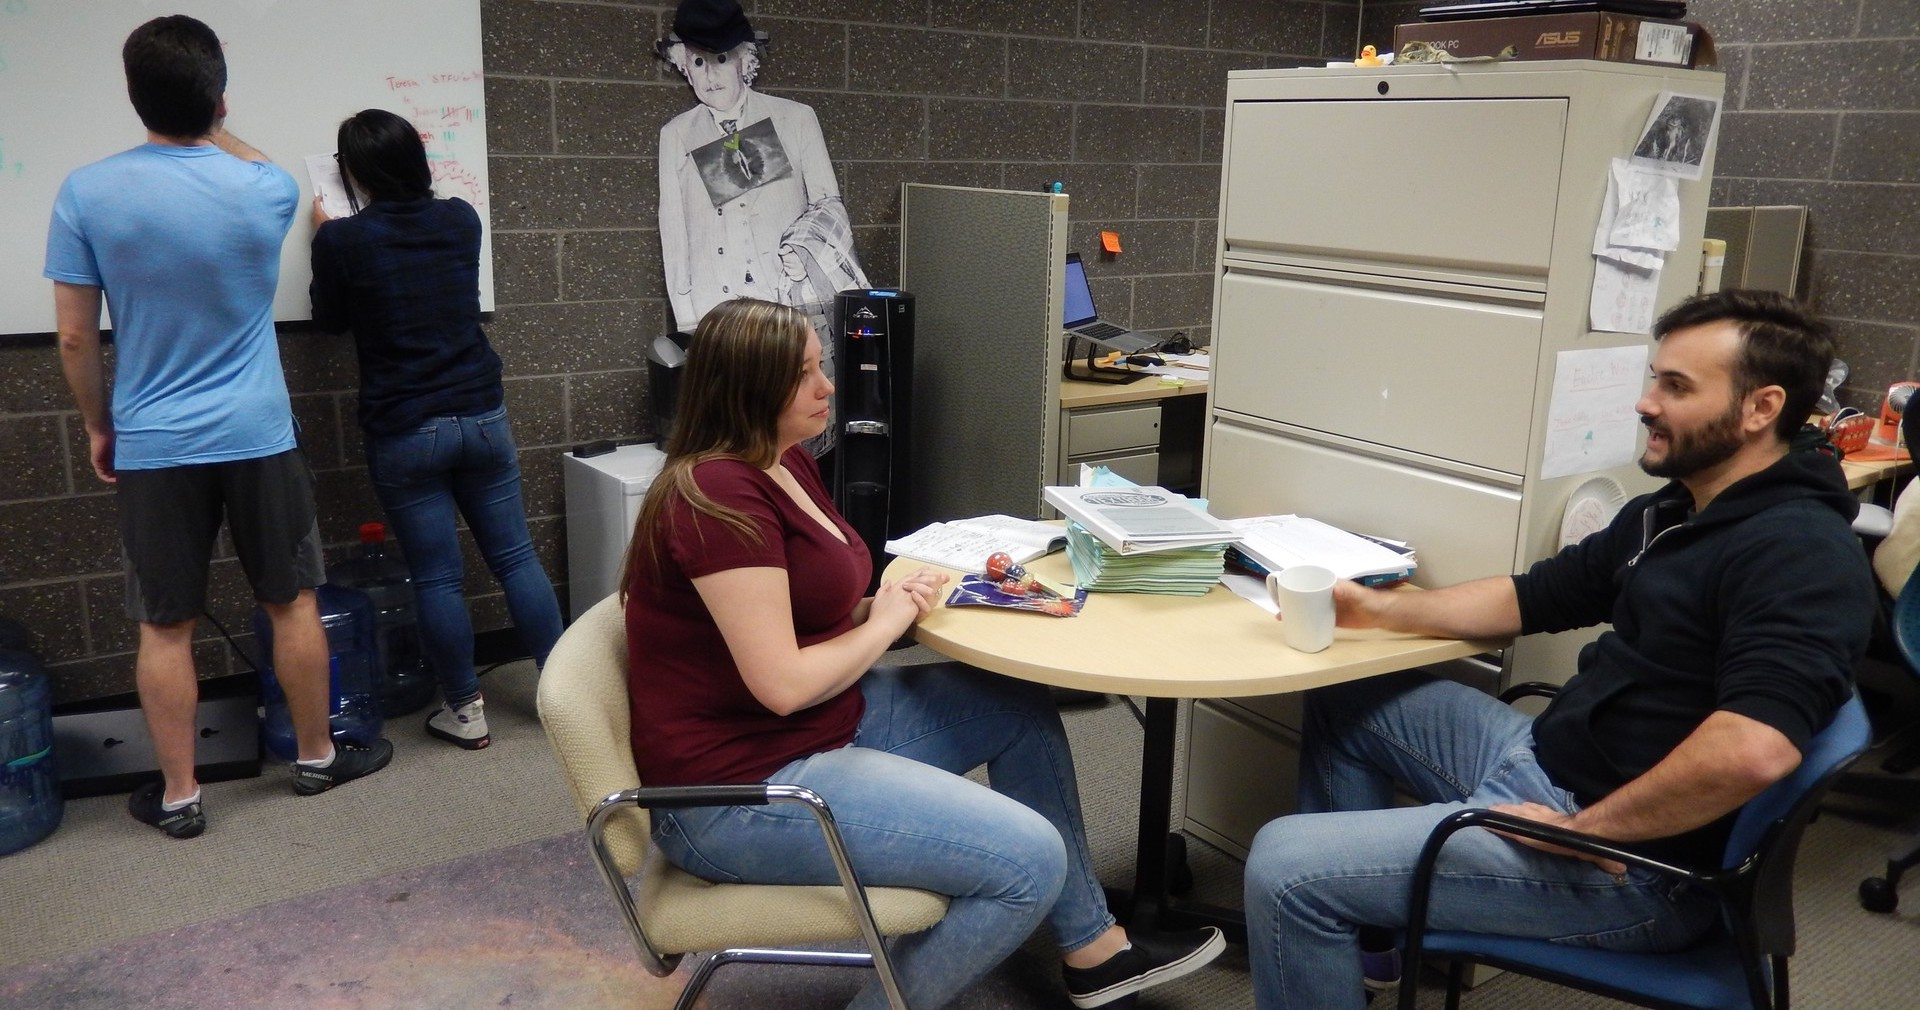 Students confer and work together in the graduate student office